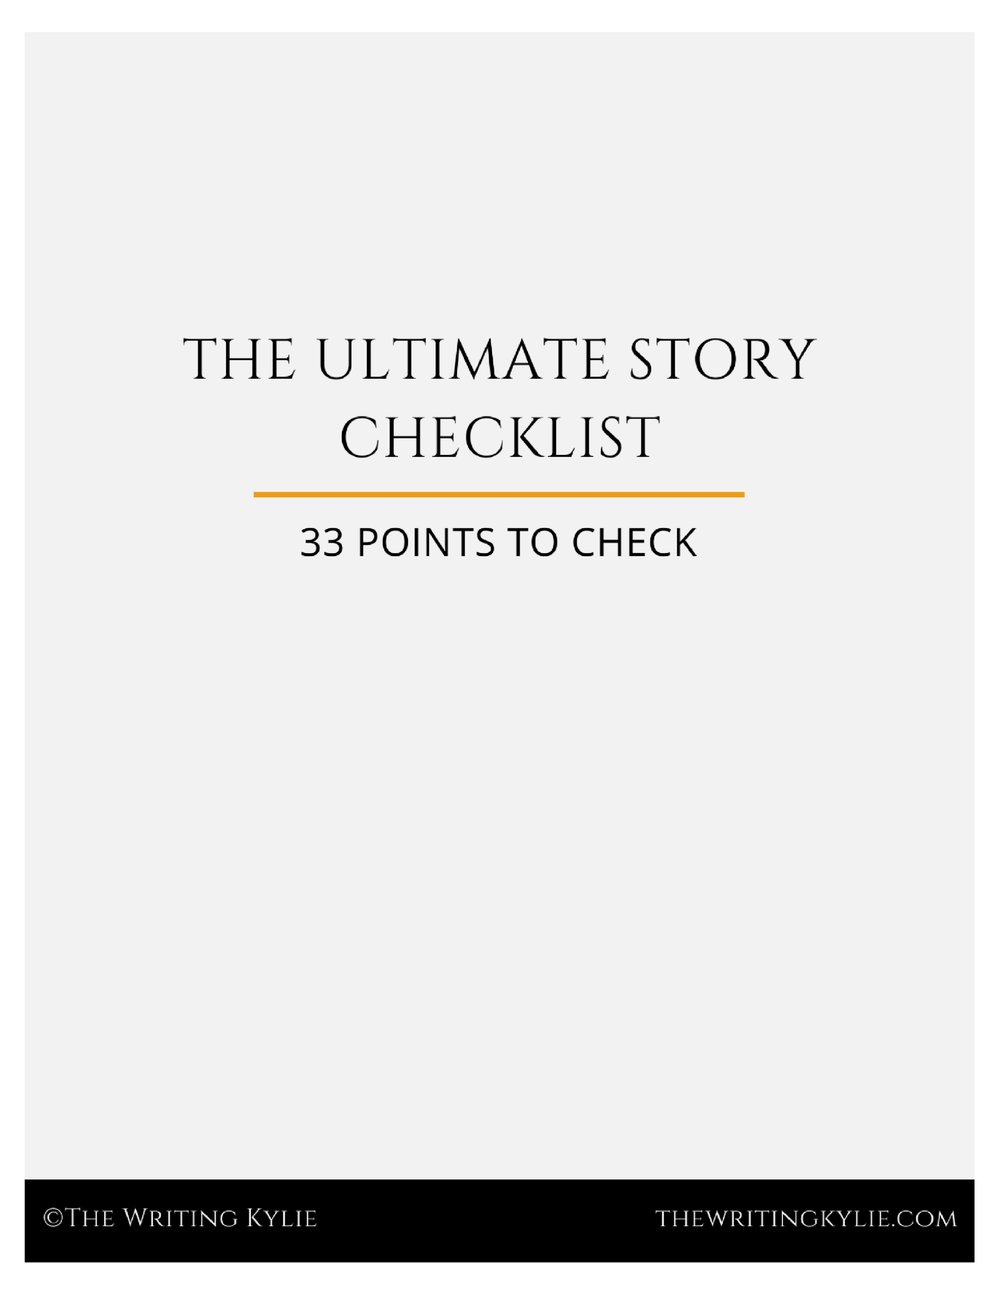 Download the  FREE  Ultimate Story Checklist!